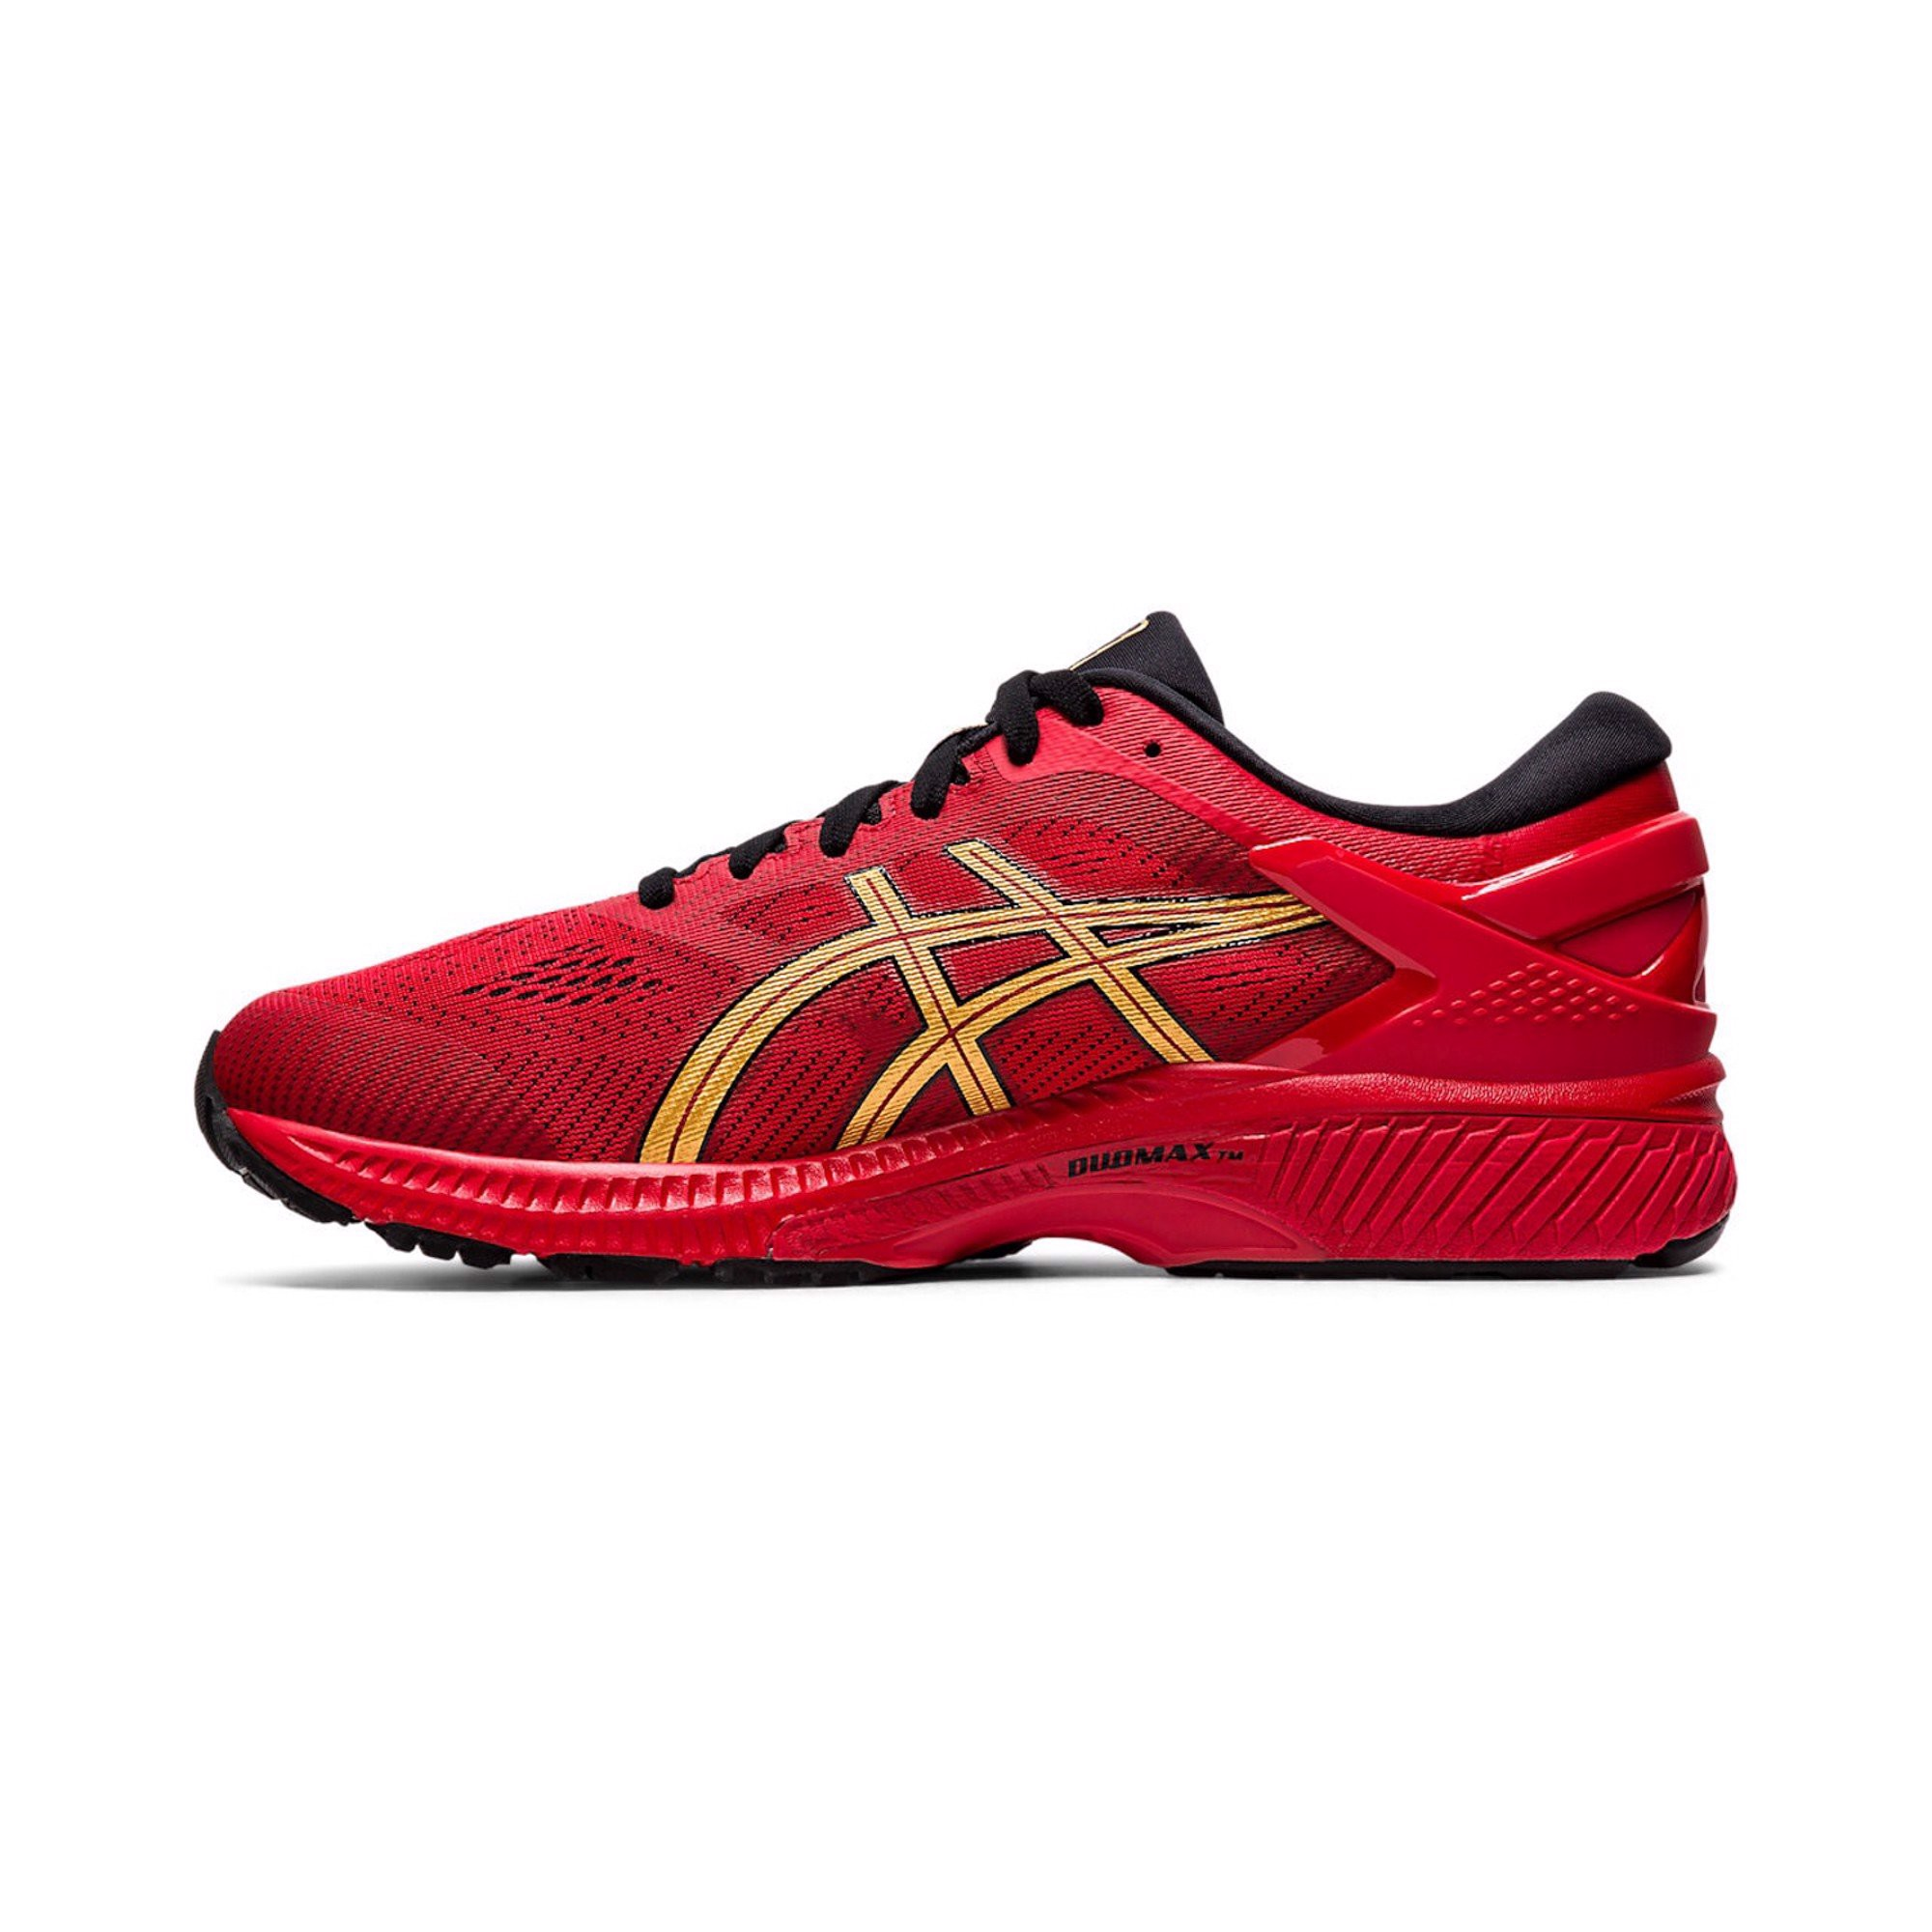 ASICS Gel-Kayano 26 'Good Fortune' 1011A772-600